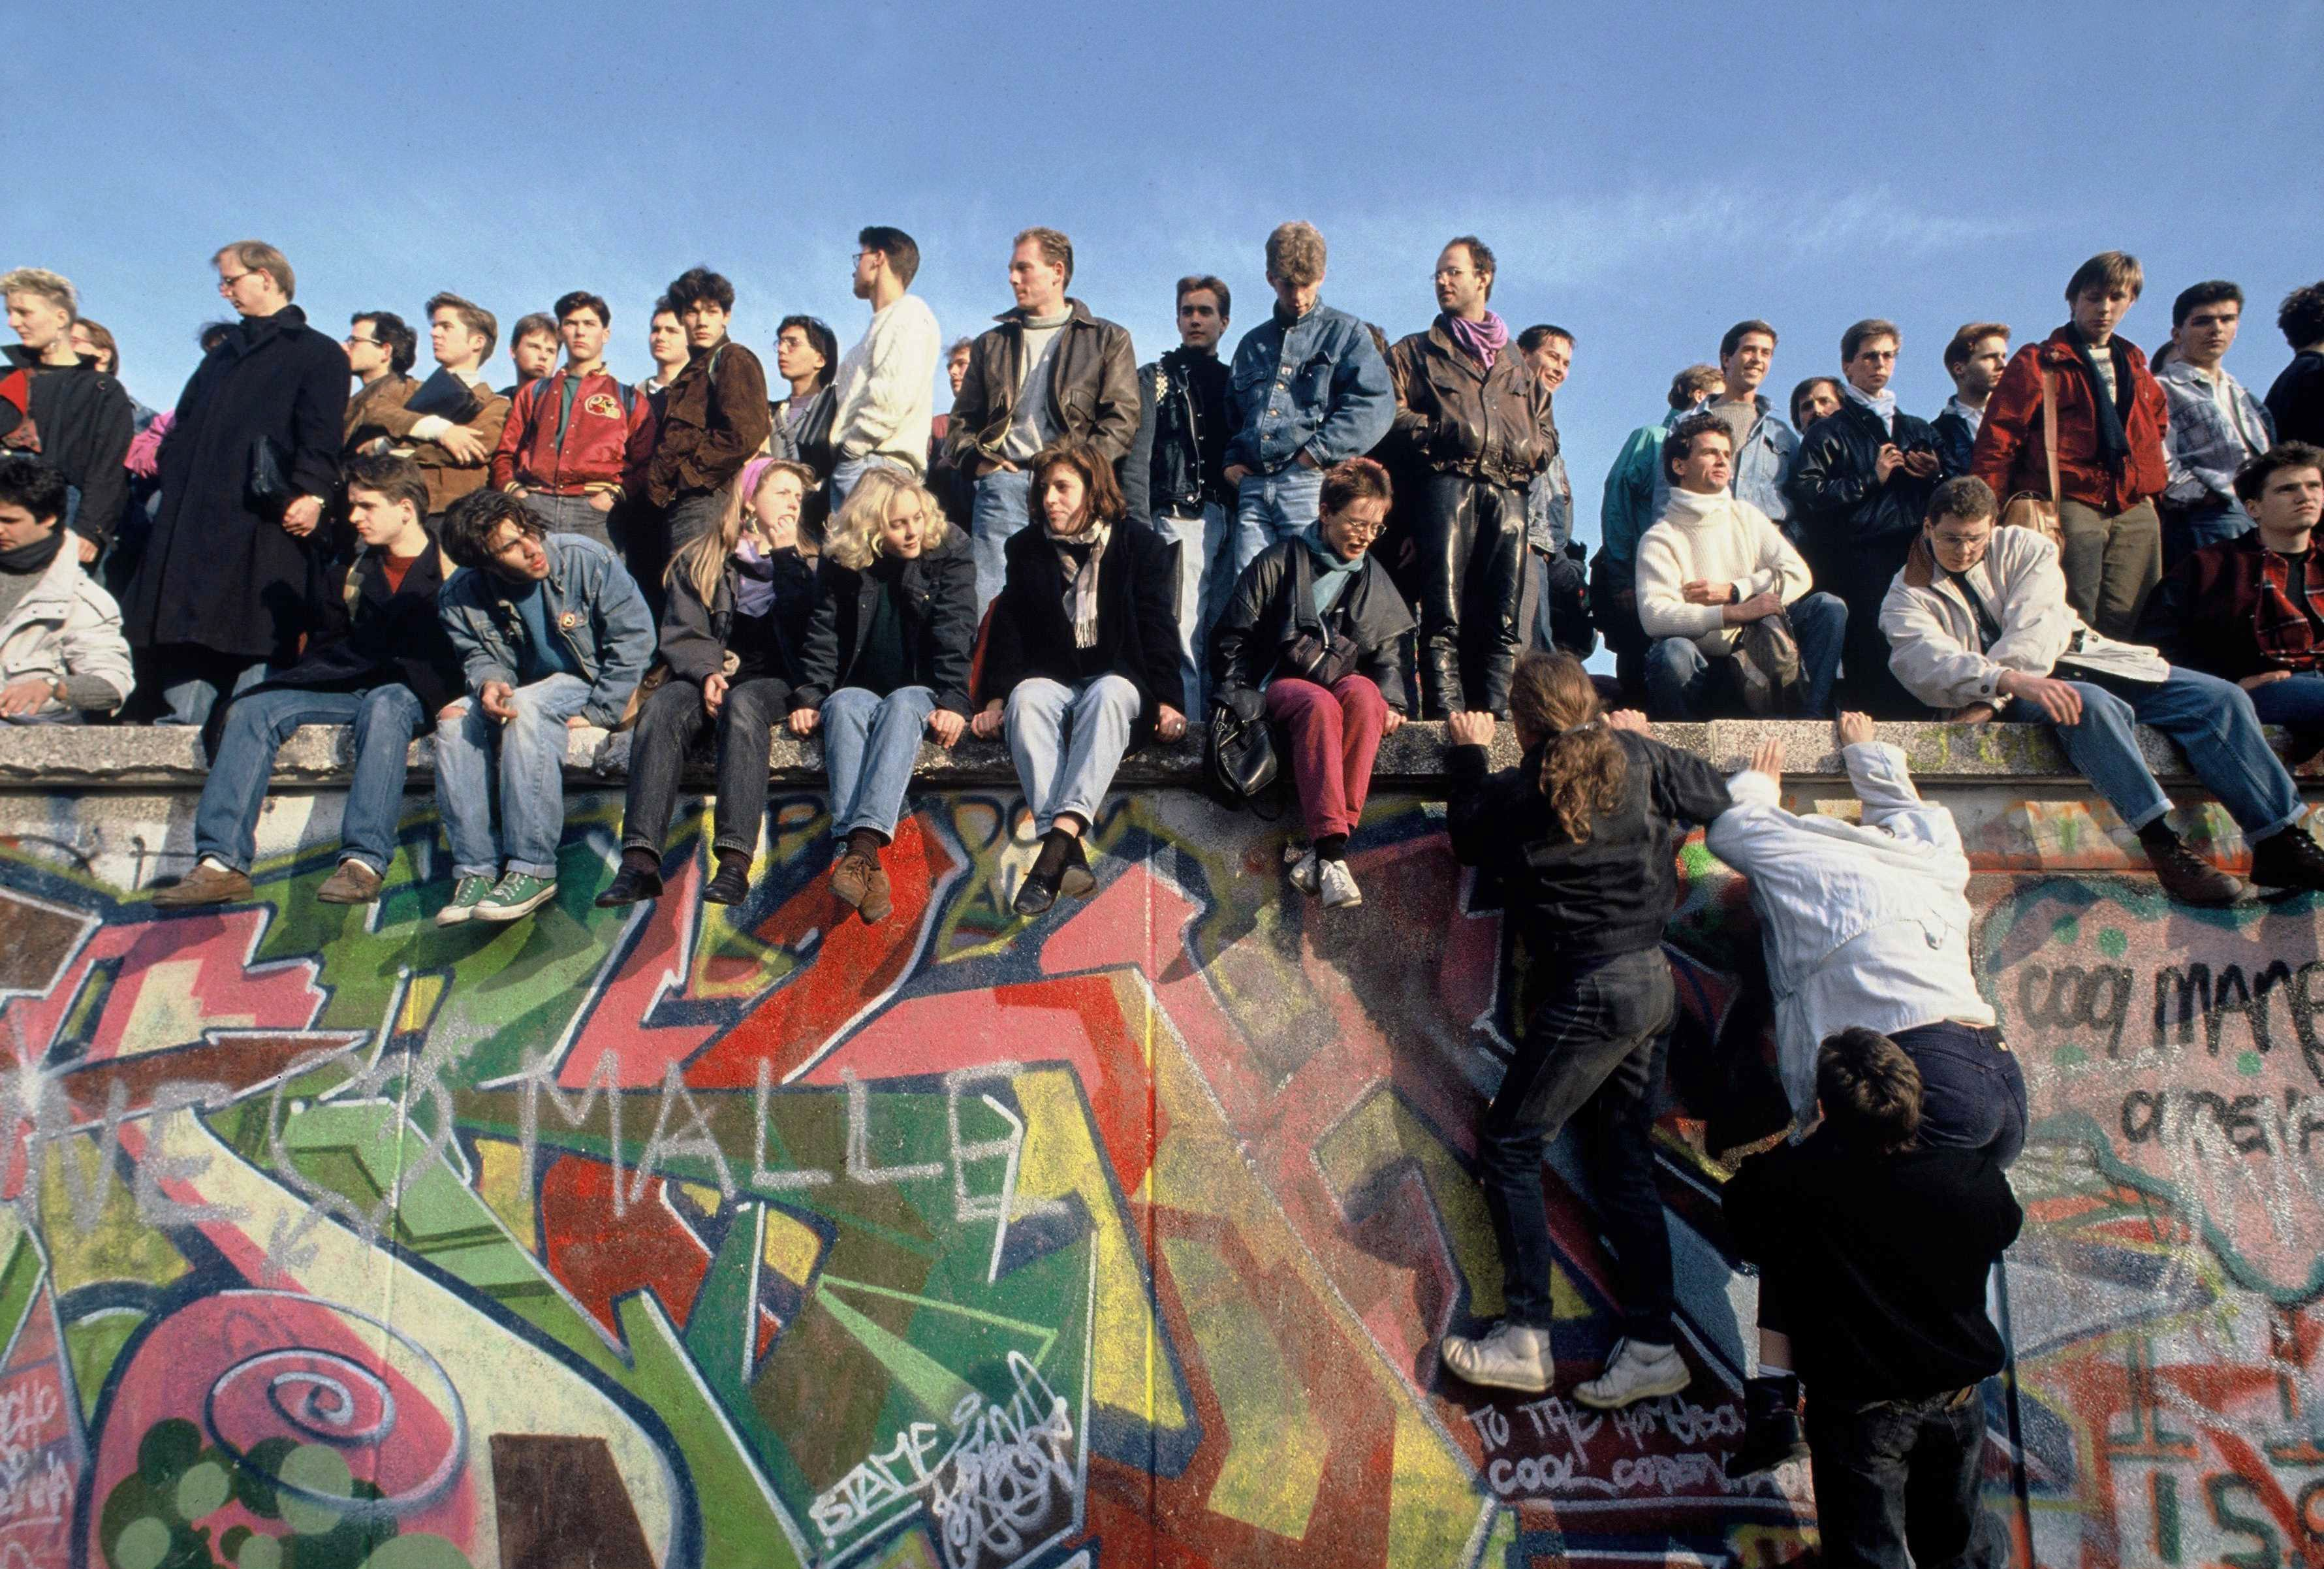 People climb onto the Berlin Wall on November 10th, 1989 in celebration.